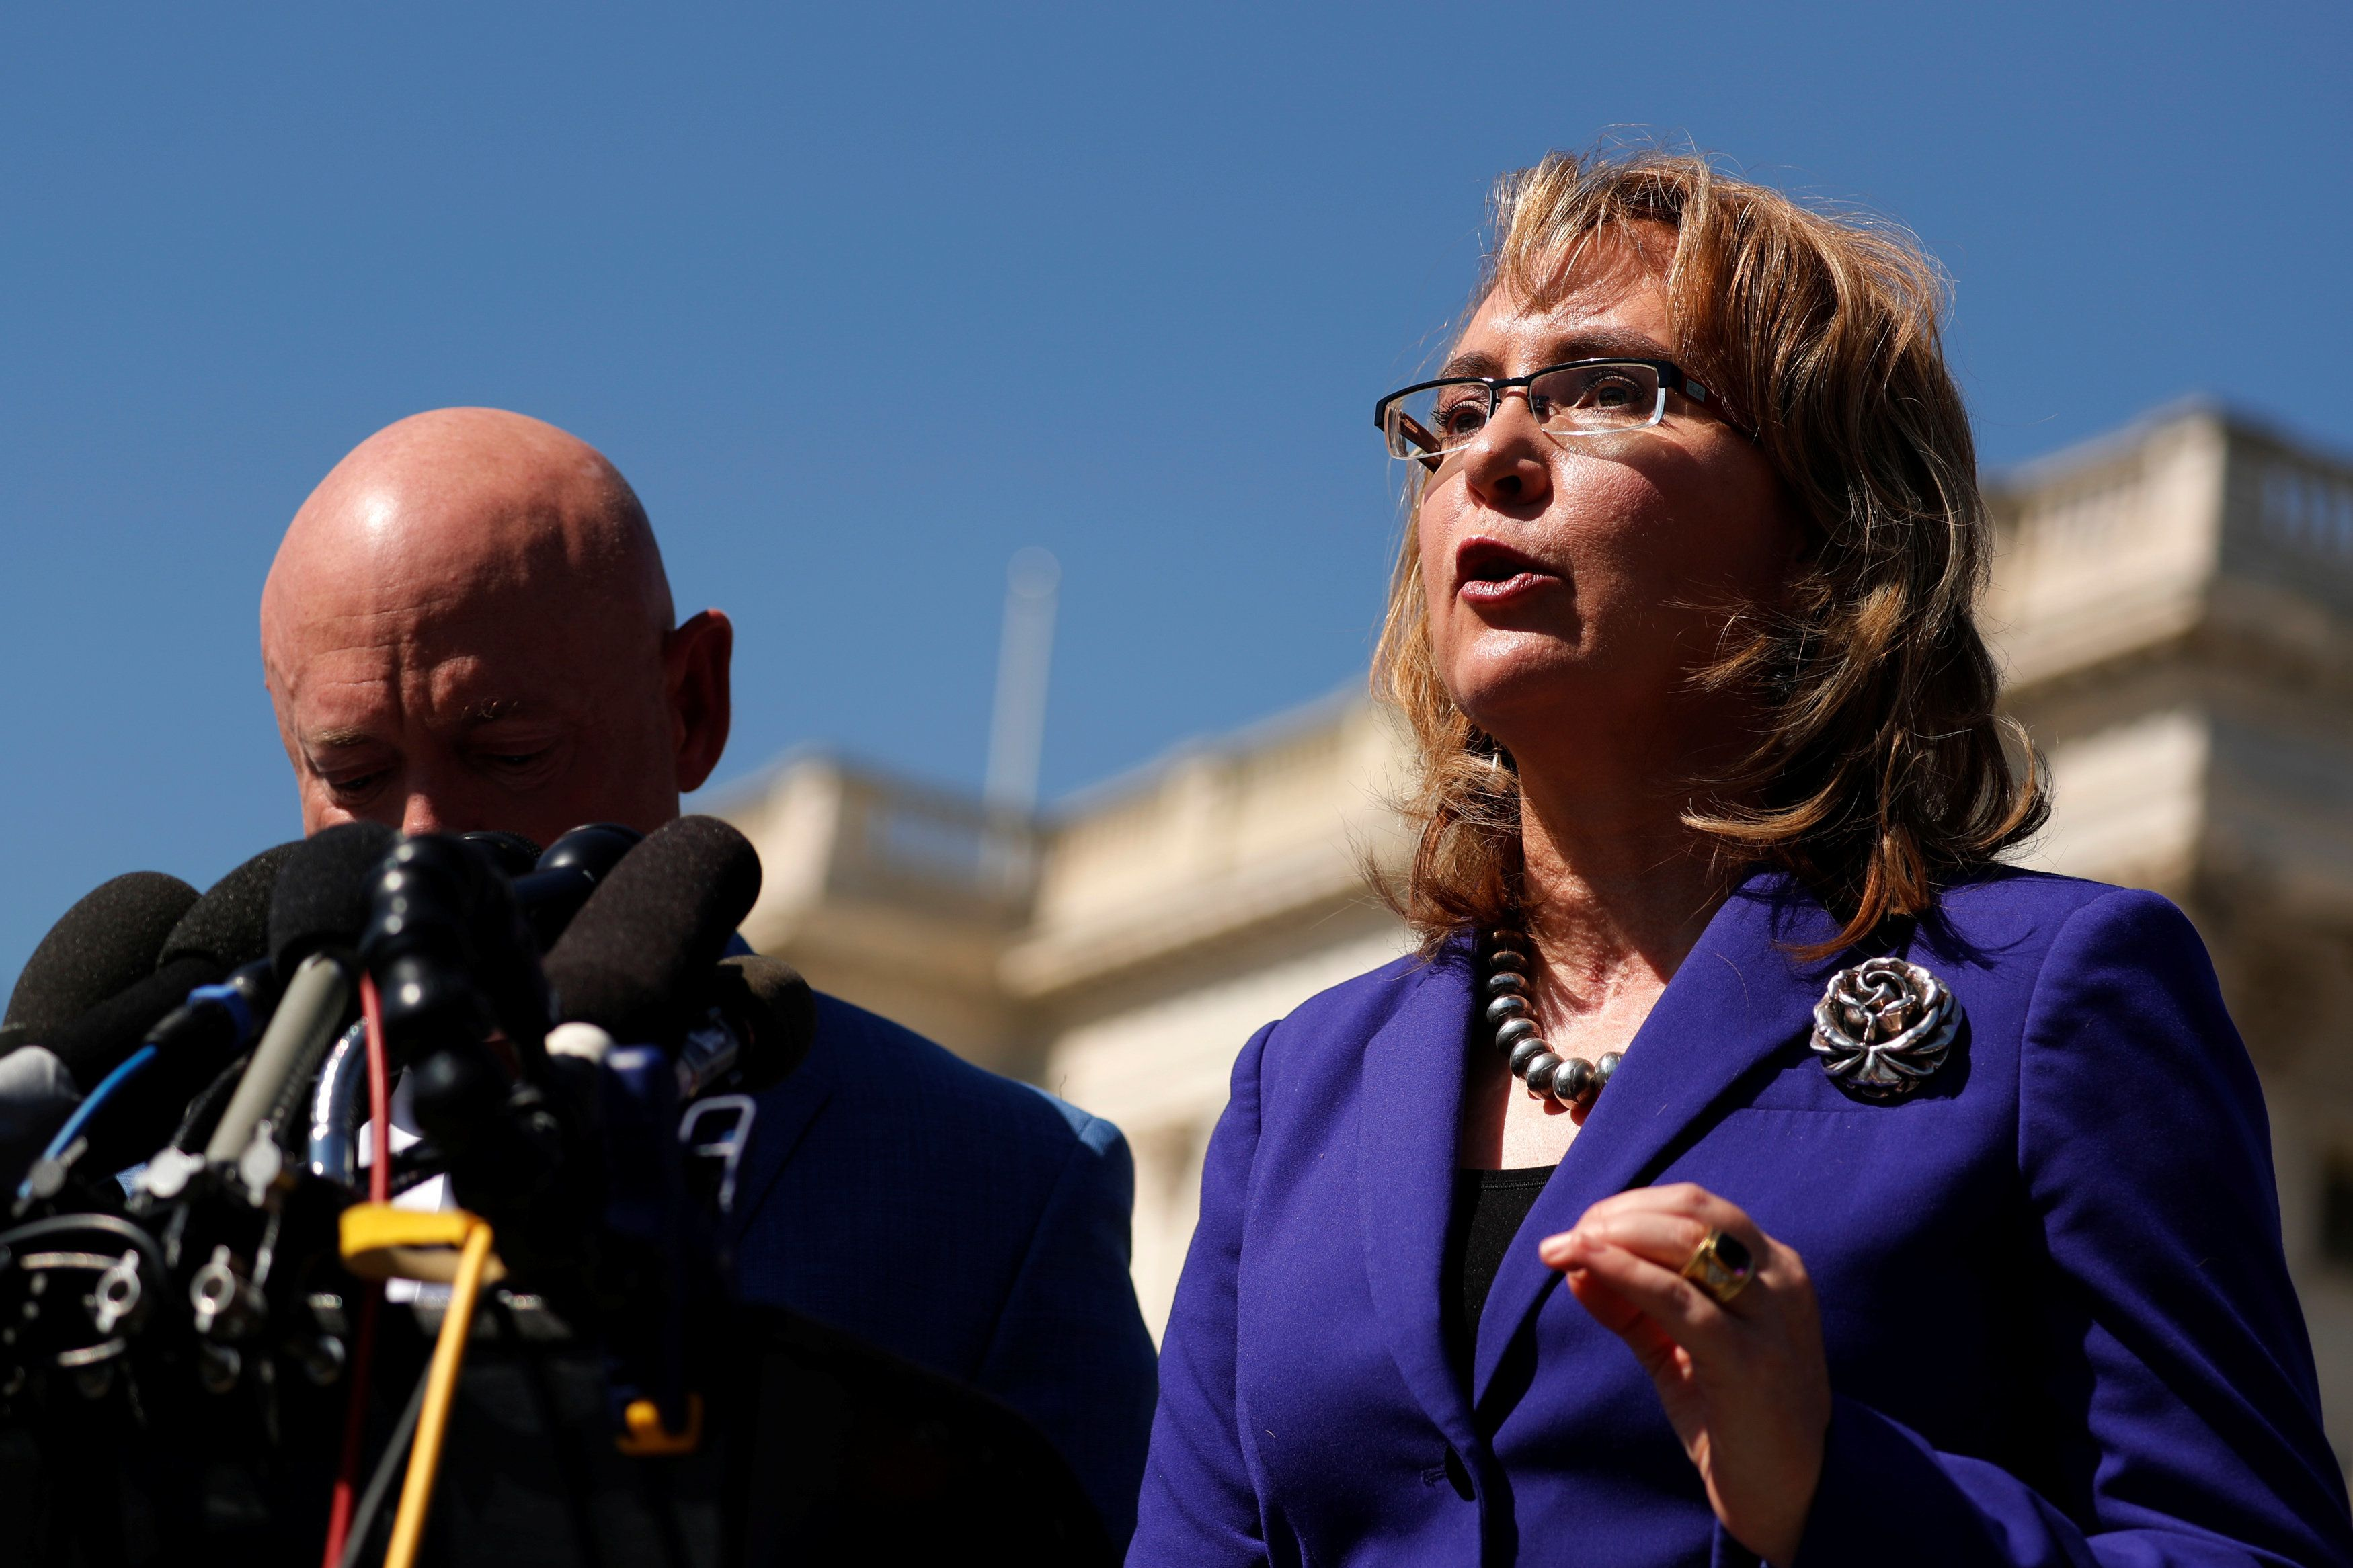 Former U.S. Representative Gabrielle Giffords (D-AZ), with her husband retired U.S. astronaut Mark Kelly, addresses reporters about the deadly shootings in Las Vegas, from a lectern outside the U.S. Capitol in Washington, U.S. October 2, 2017. REUTERS/Jonathan Ernst